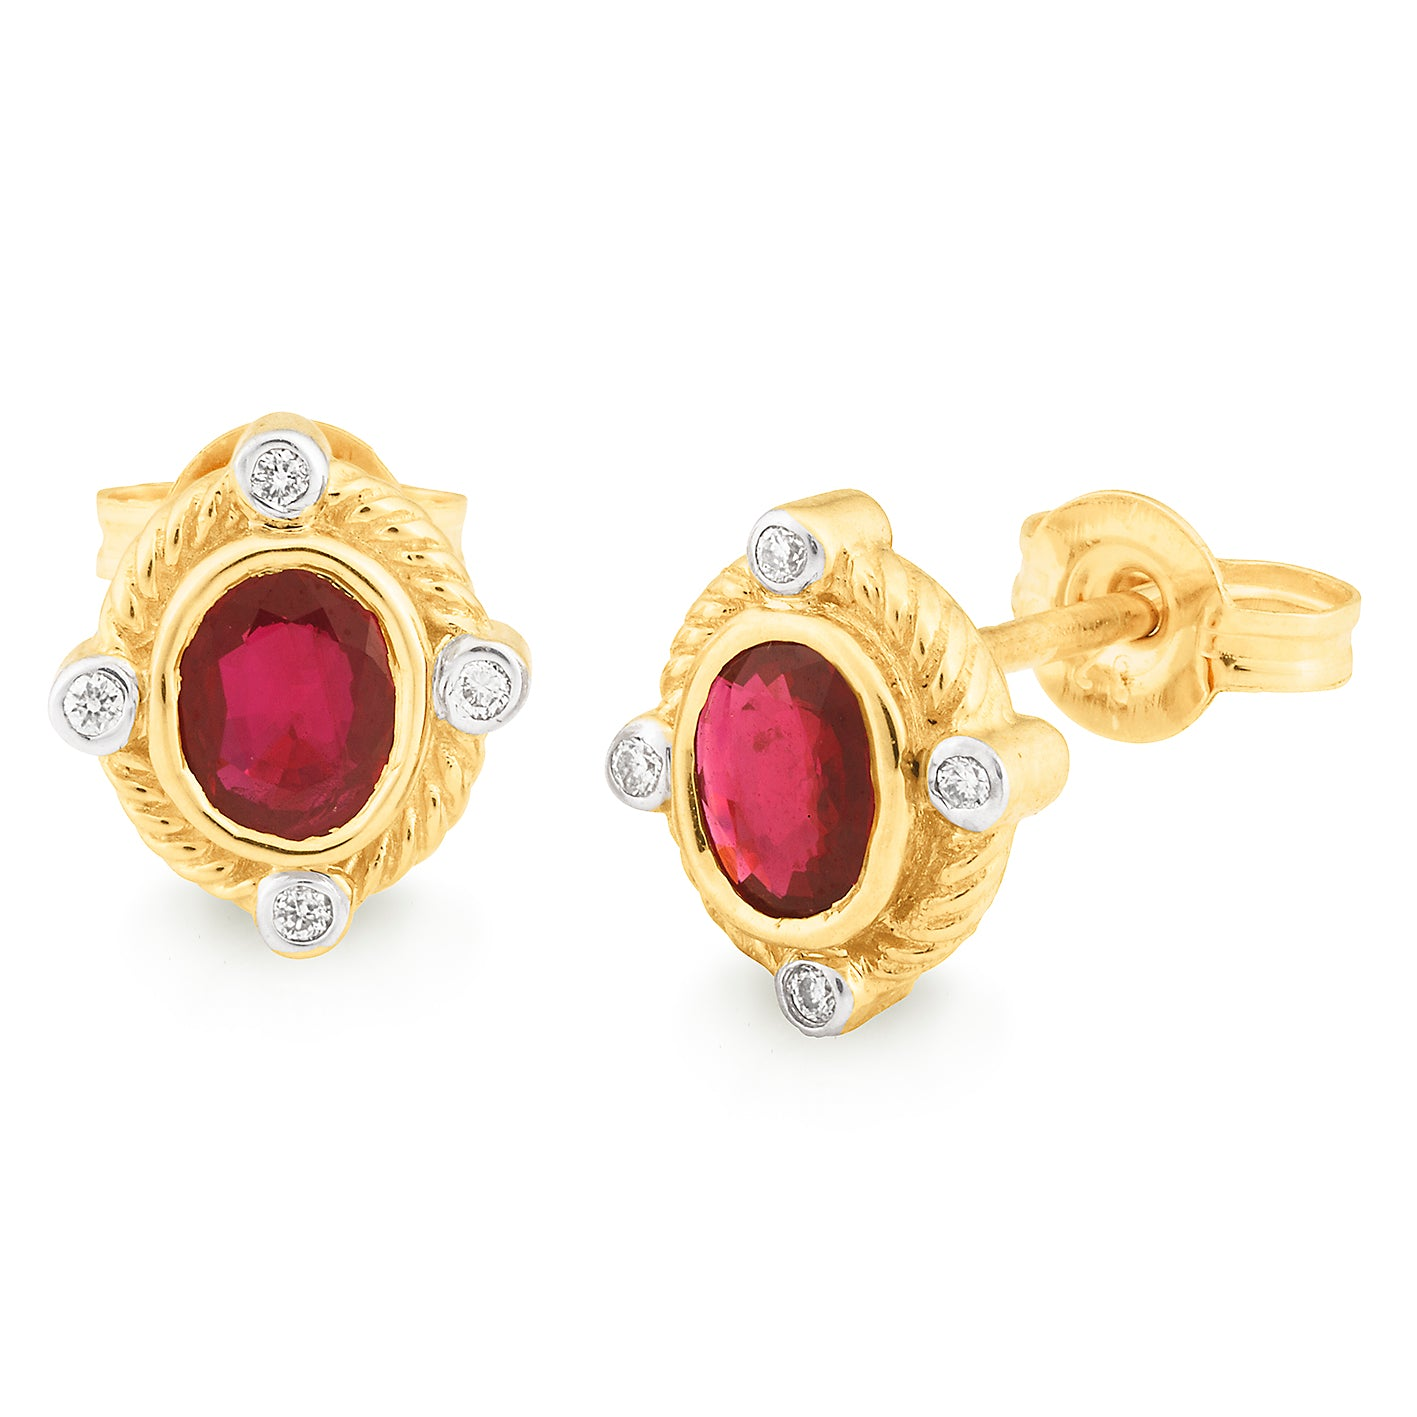 RUBY (B GRADE) & DIAMOND (SI3 JK) BEZEL SET STUD EARRING IN 9CT YELLOW GOLD TDW 0.04CT